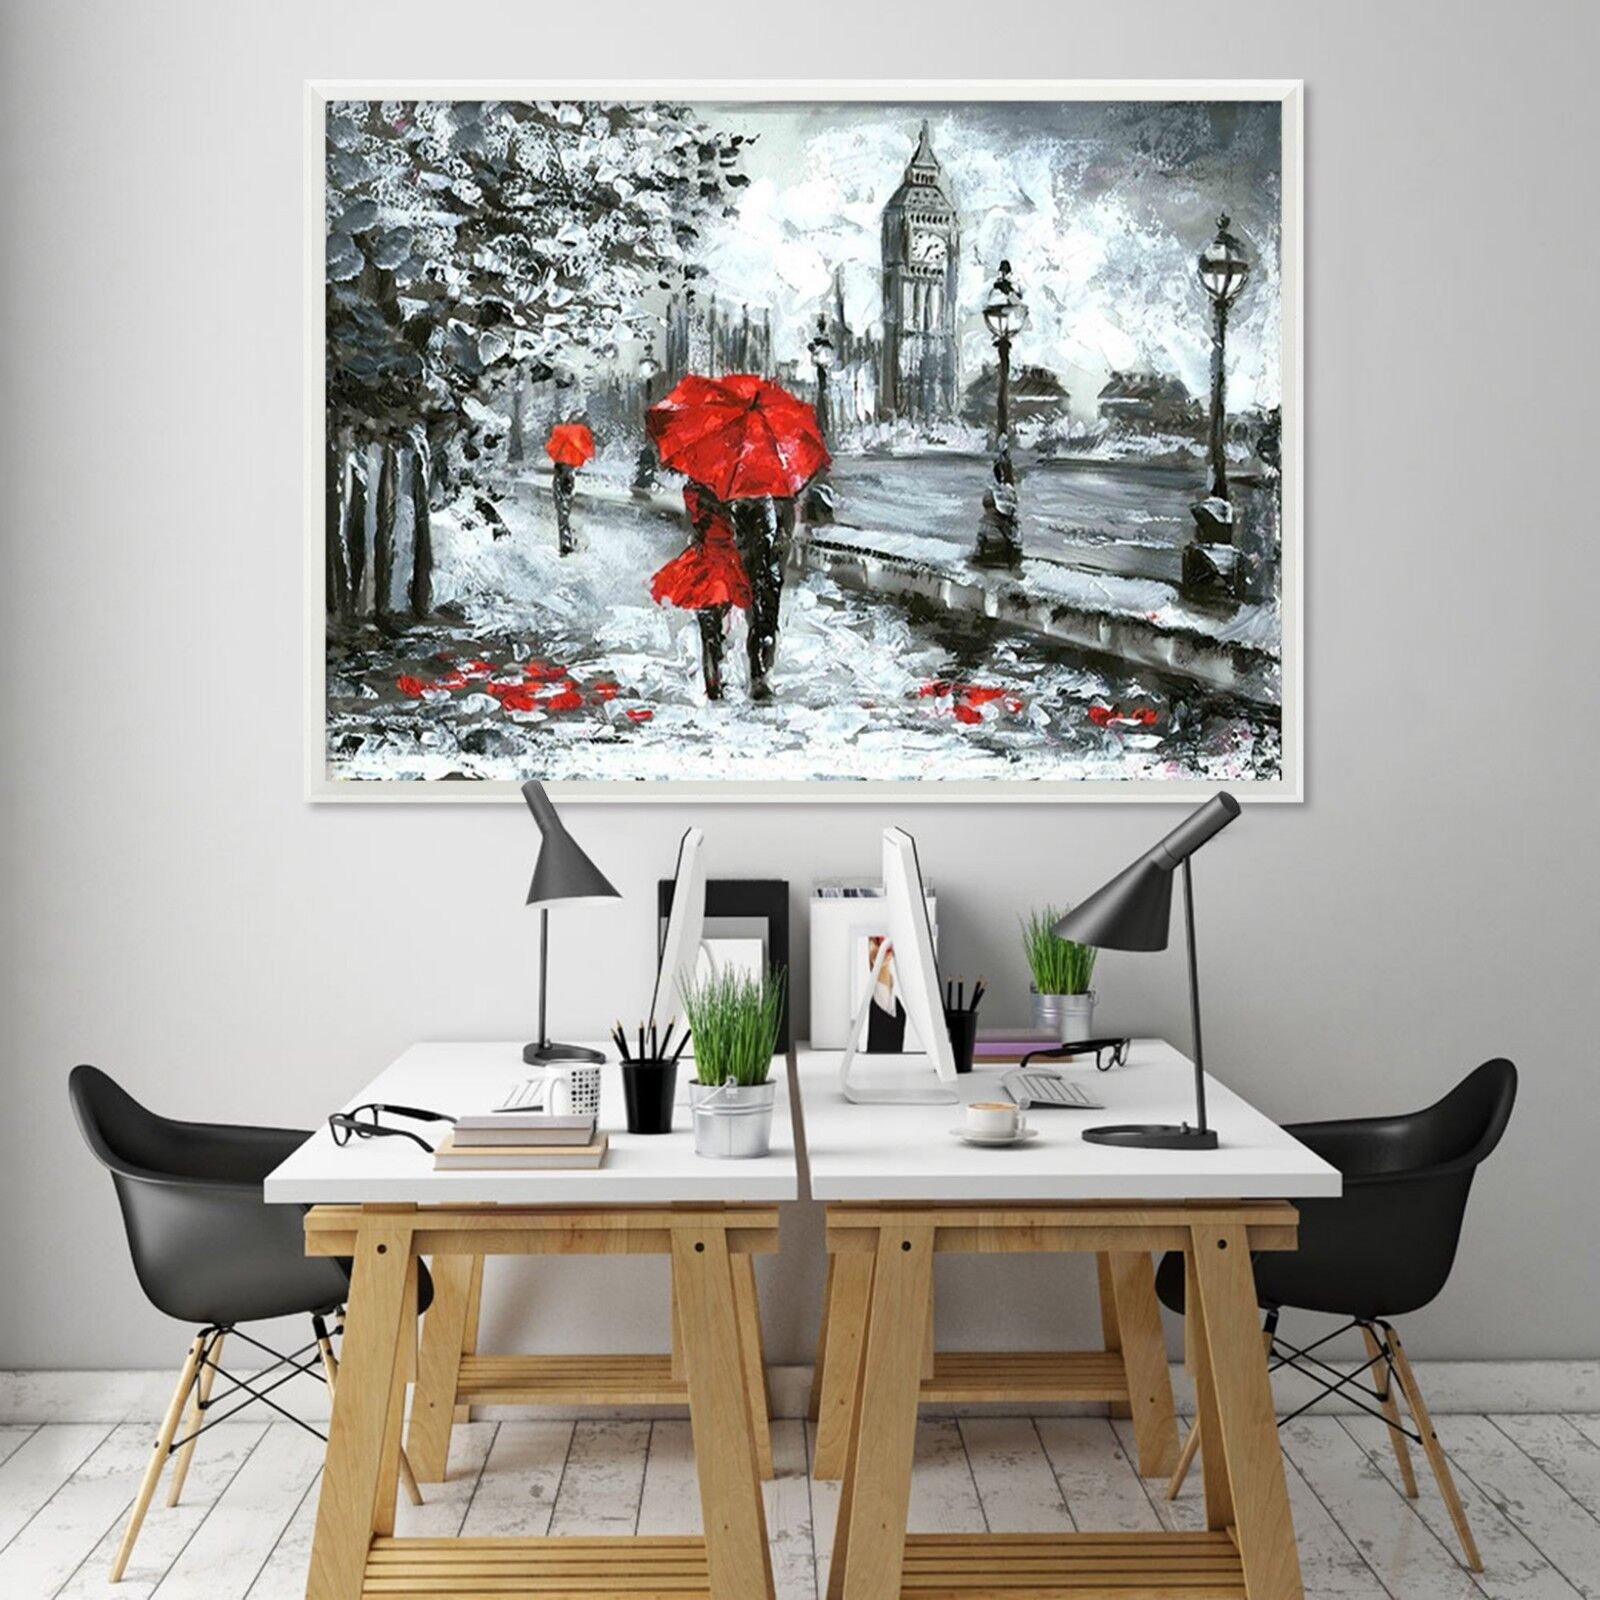 3D London Street Snow View 1 Framed Poster Home Decor Print Painting WALLPAPER